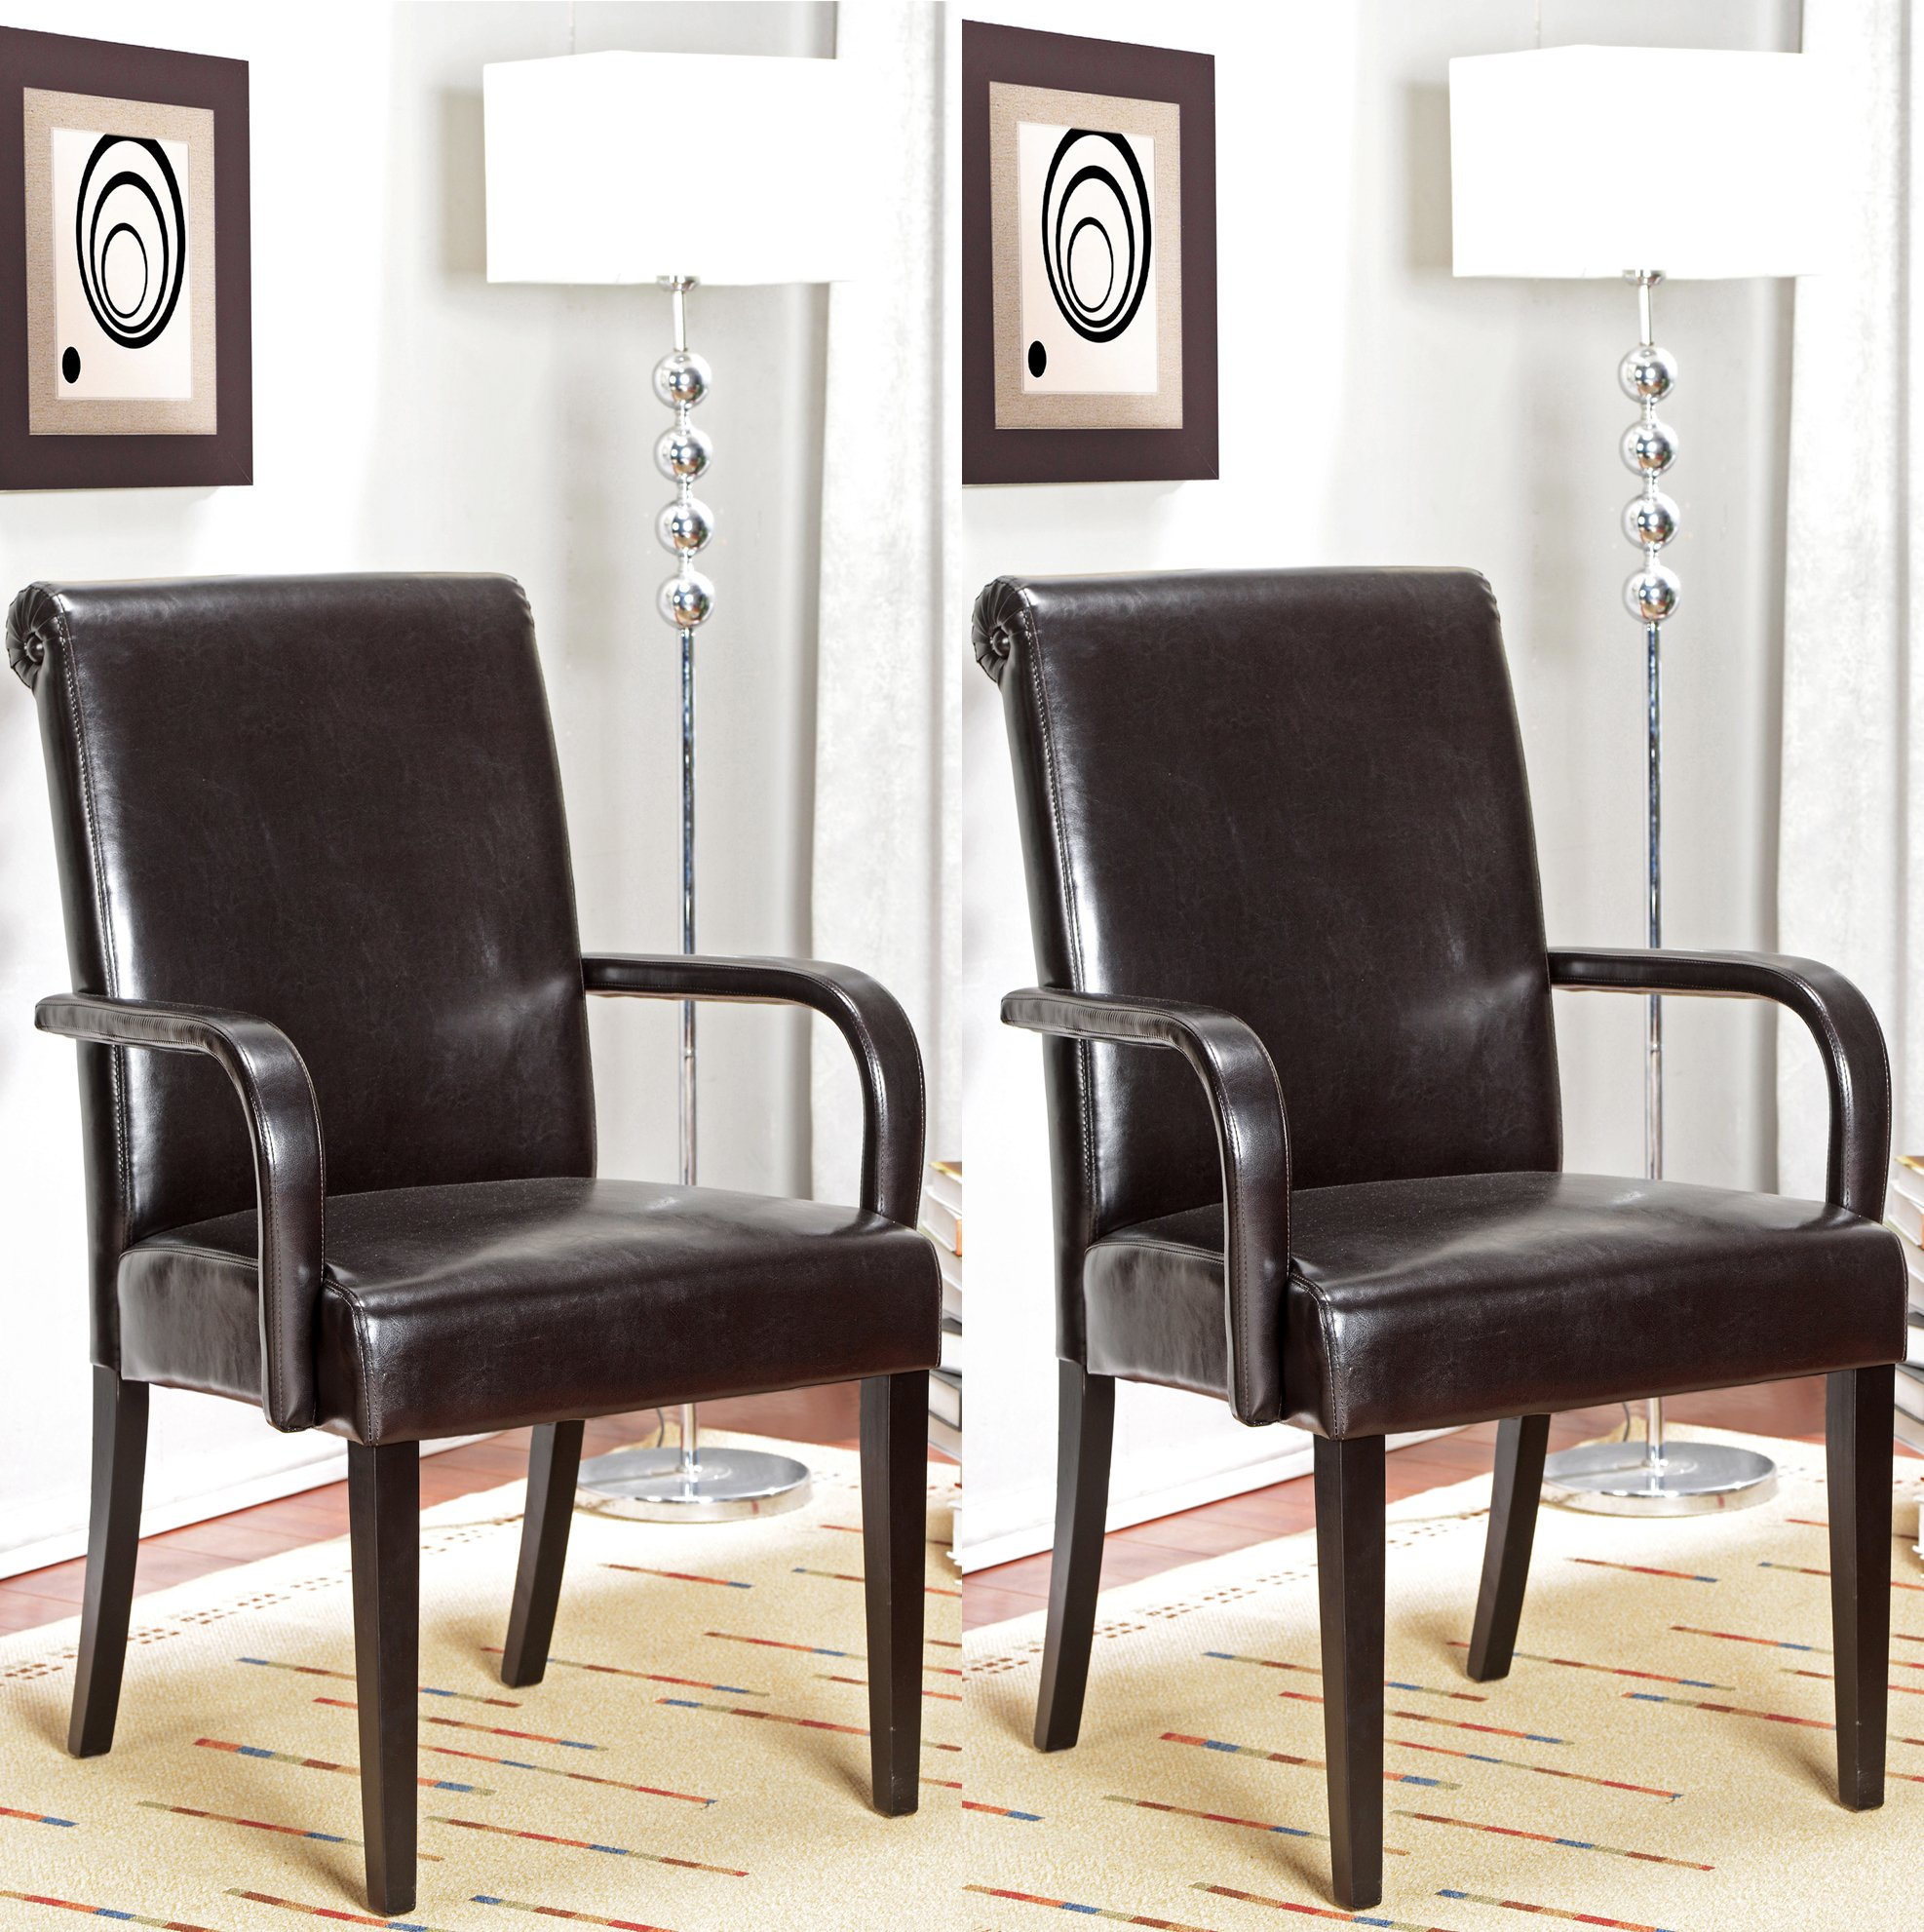 King s Brand Set of 2 Espresso Parson Chairs With Arms And Solid